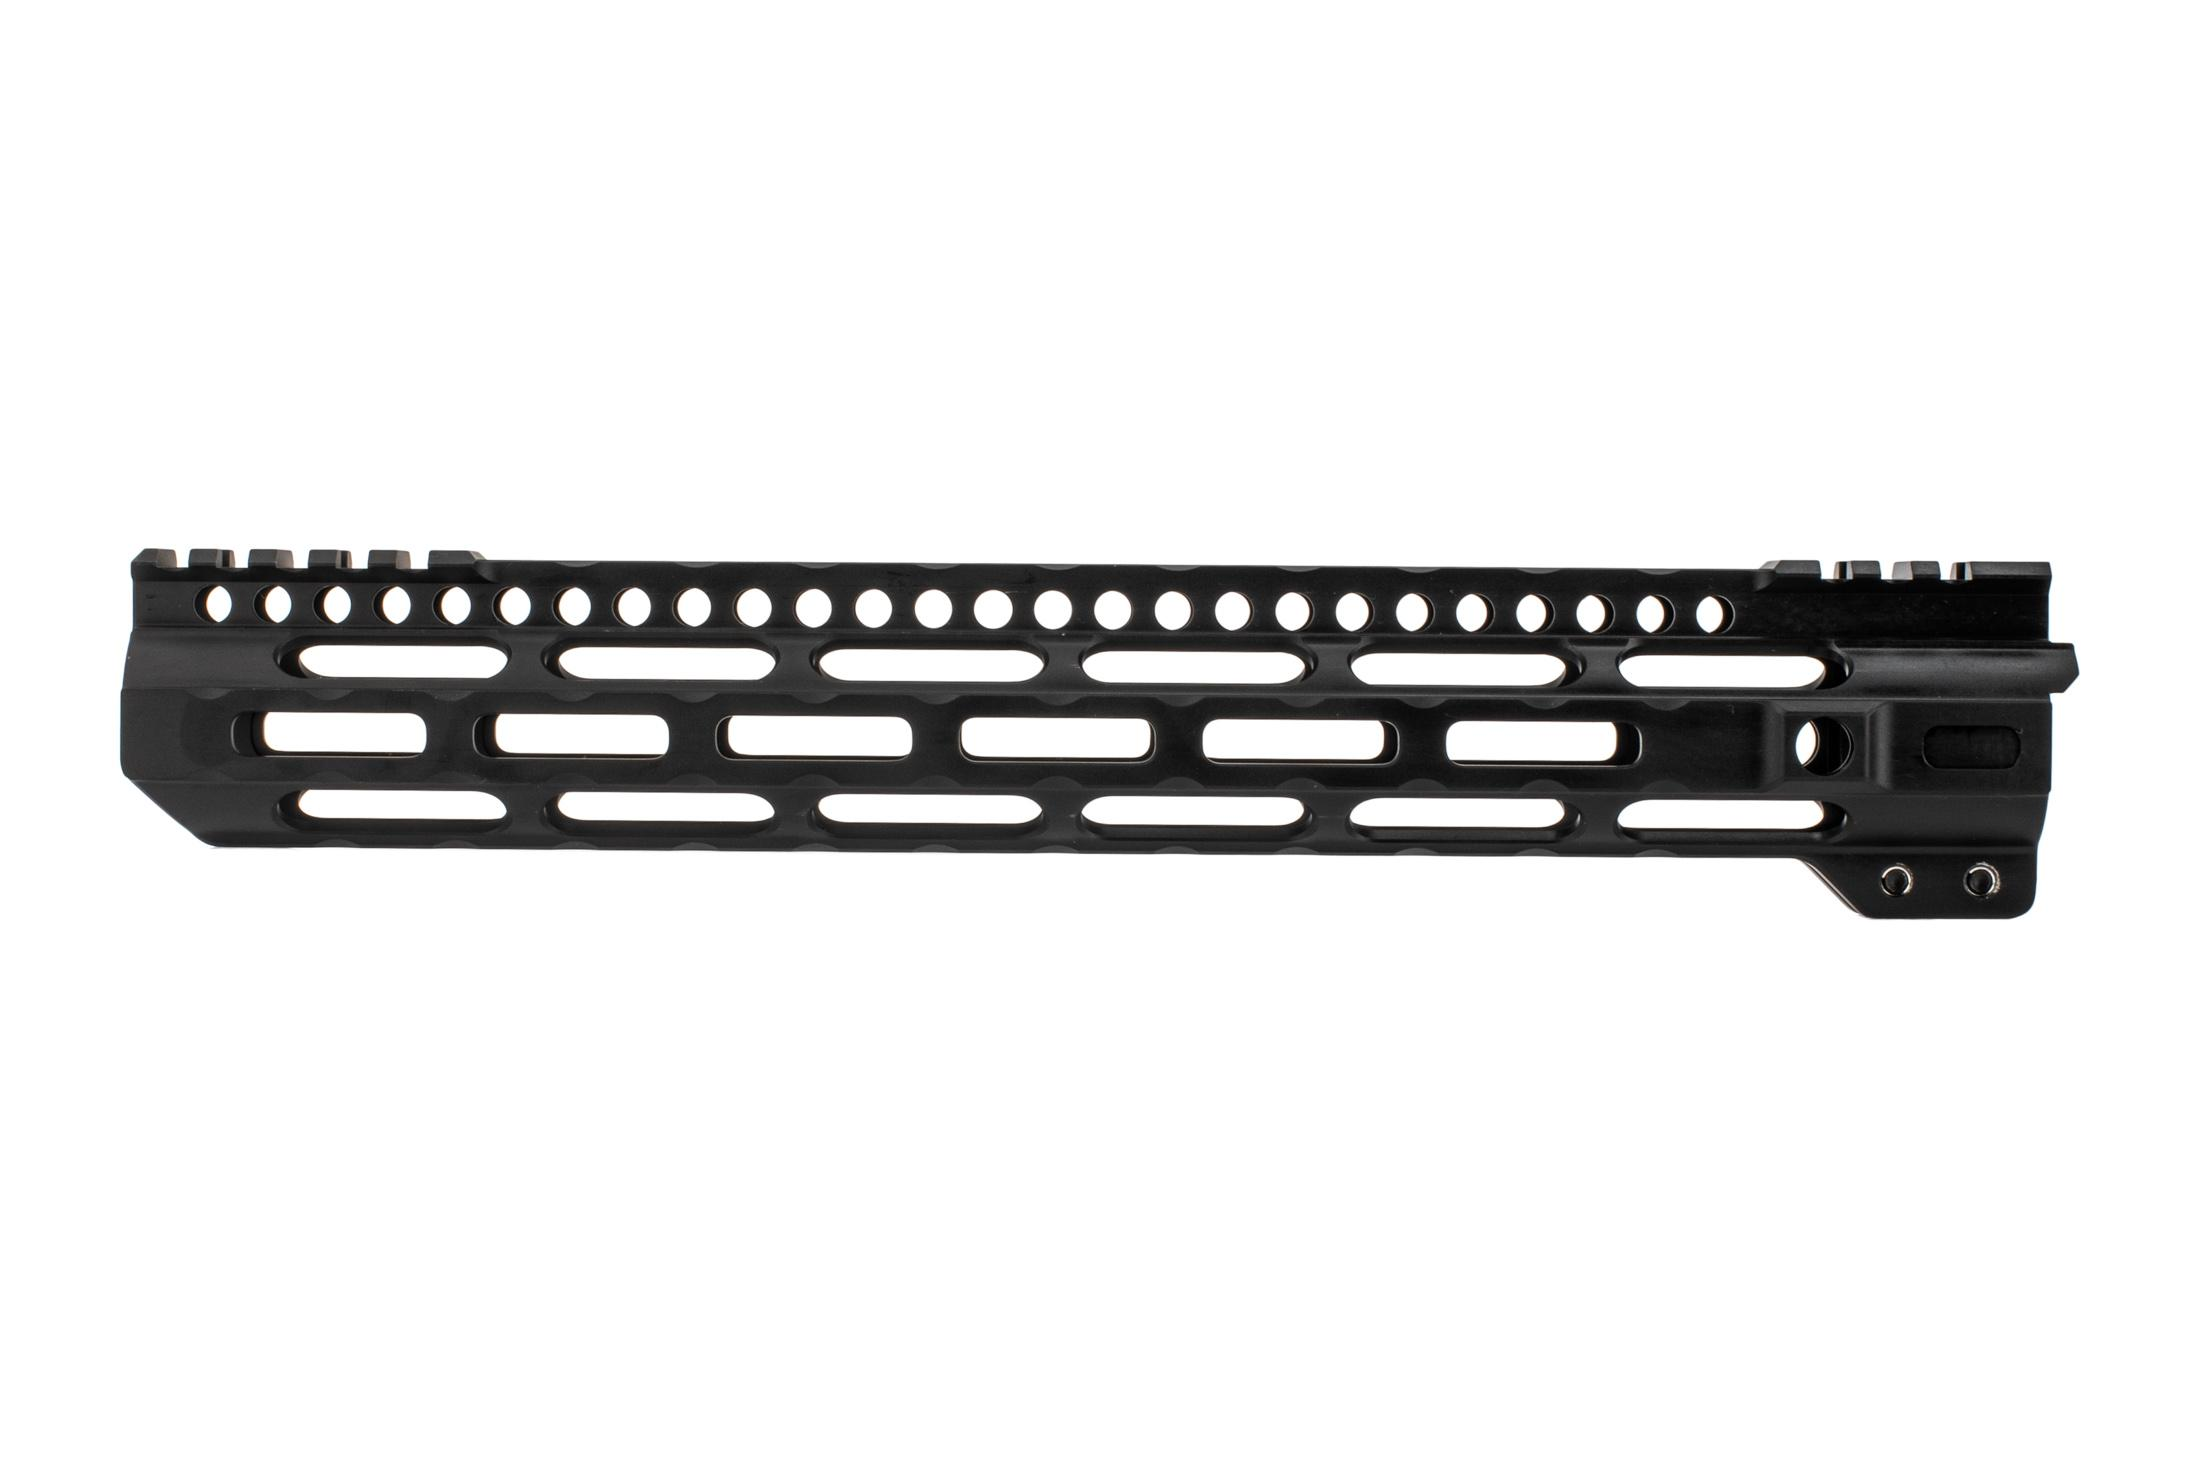 Midwest Industries Light Weight M-LOK handguard features a fre float design